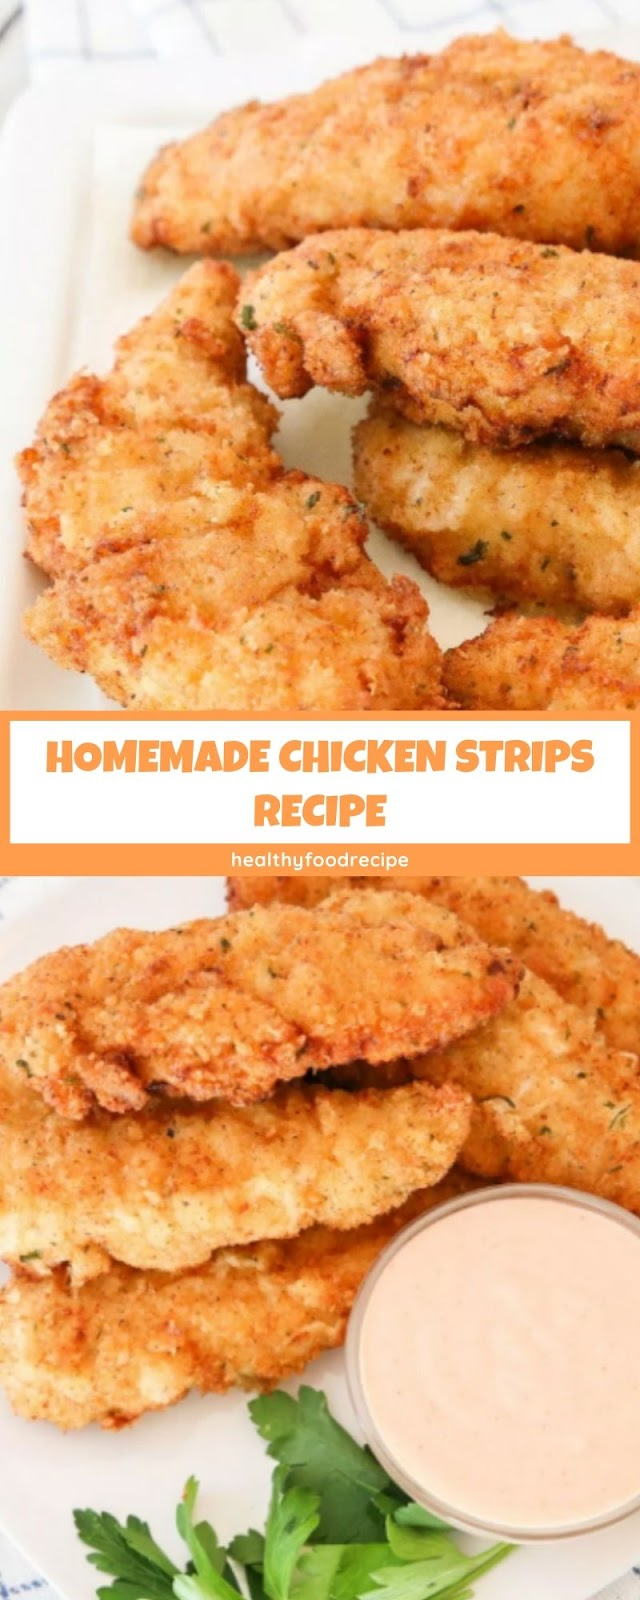 HOMEMADE CHICKEN STRIPS RECIPE